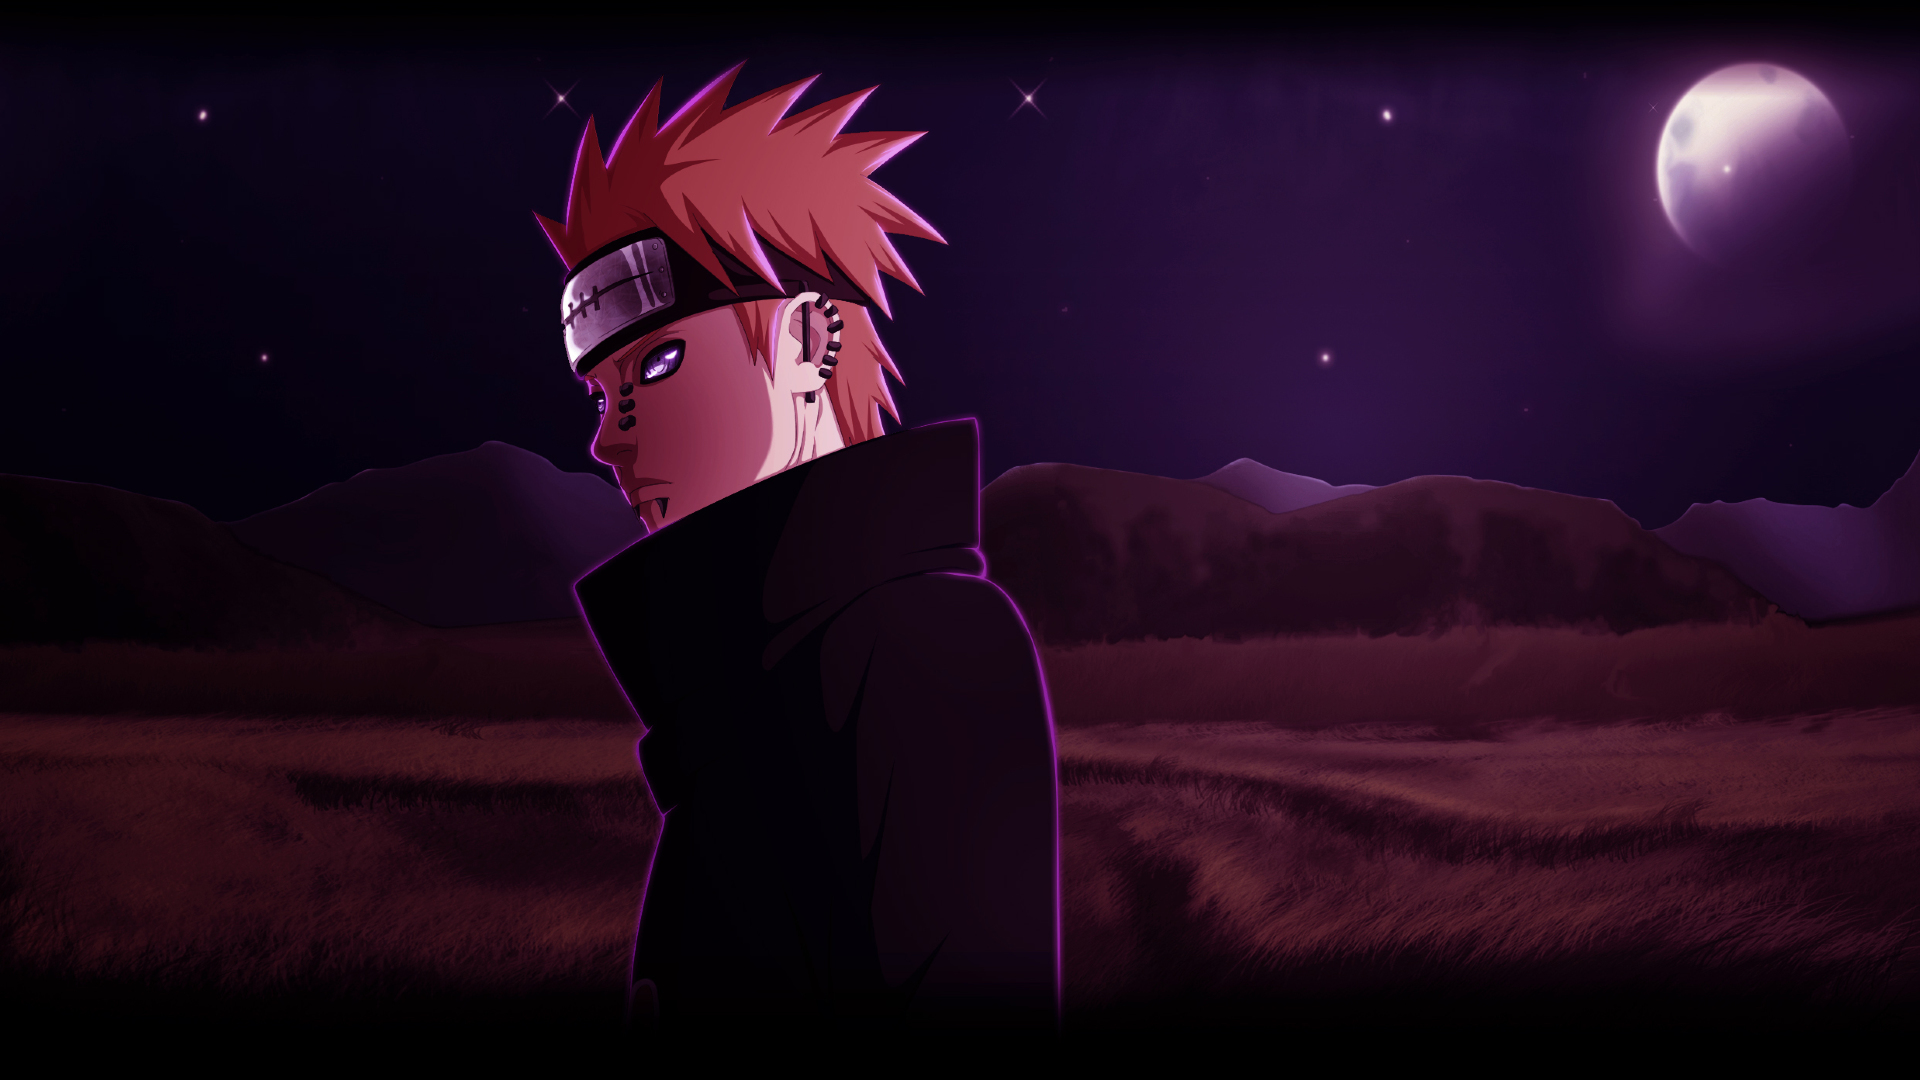 1920x1080 Pain Yahiko Naruto 1080p Laptop Full Hd Wallpaper